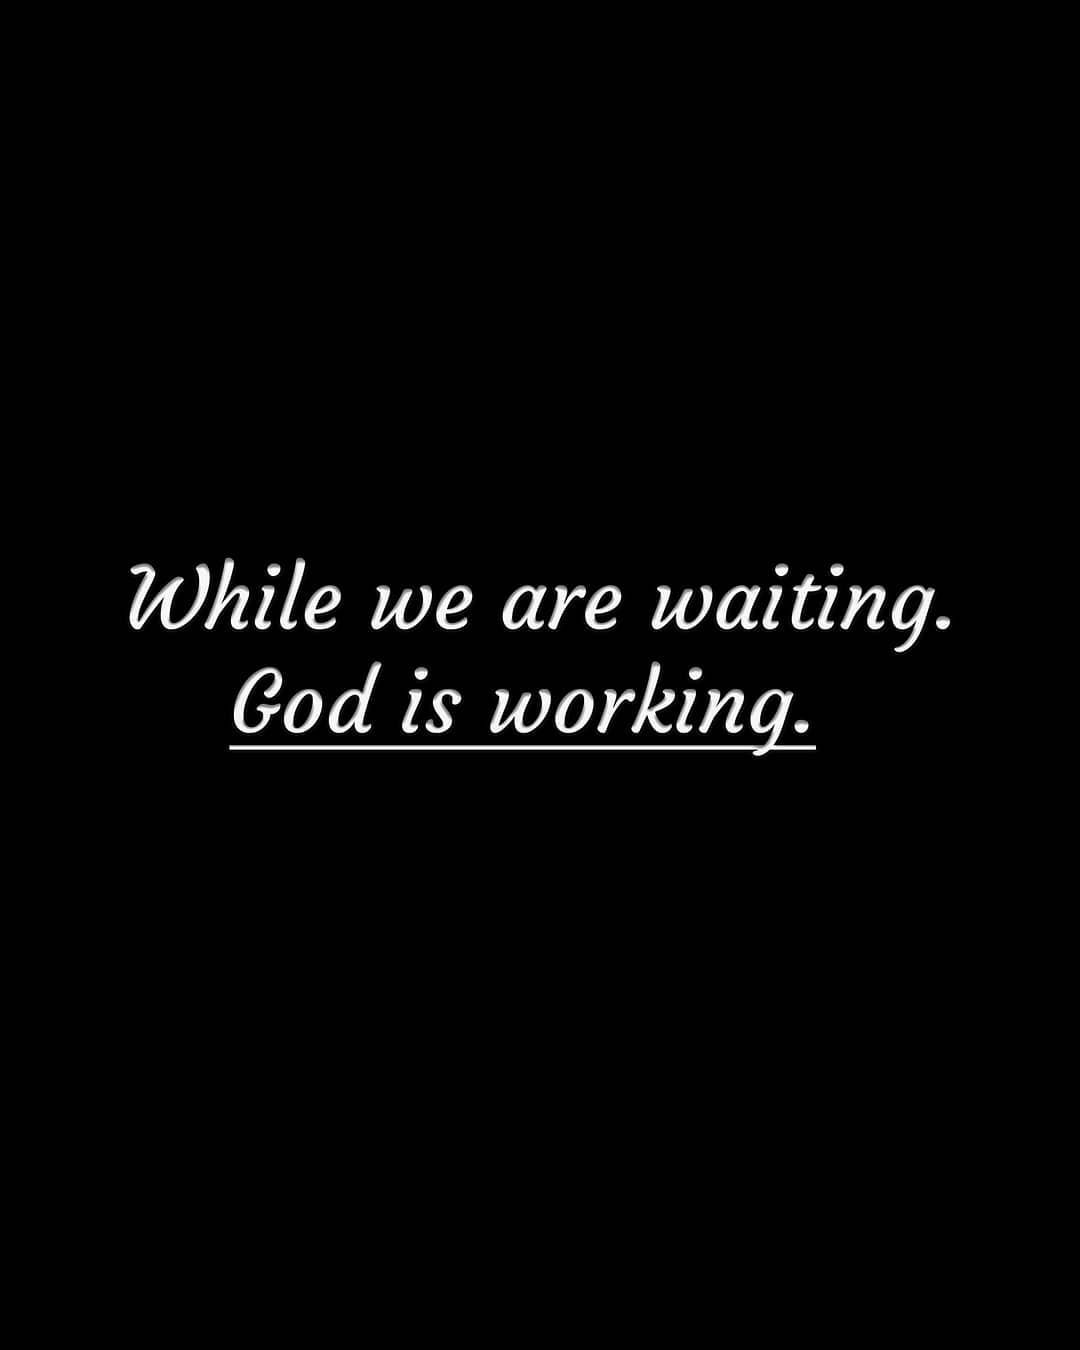 He is working for us